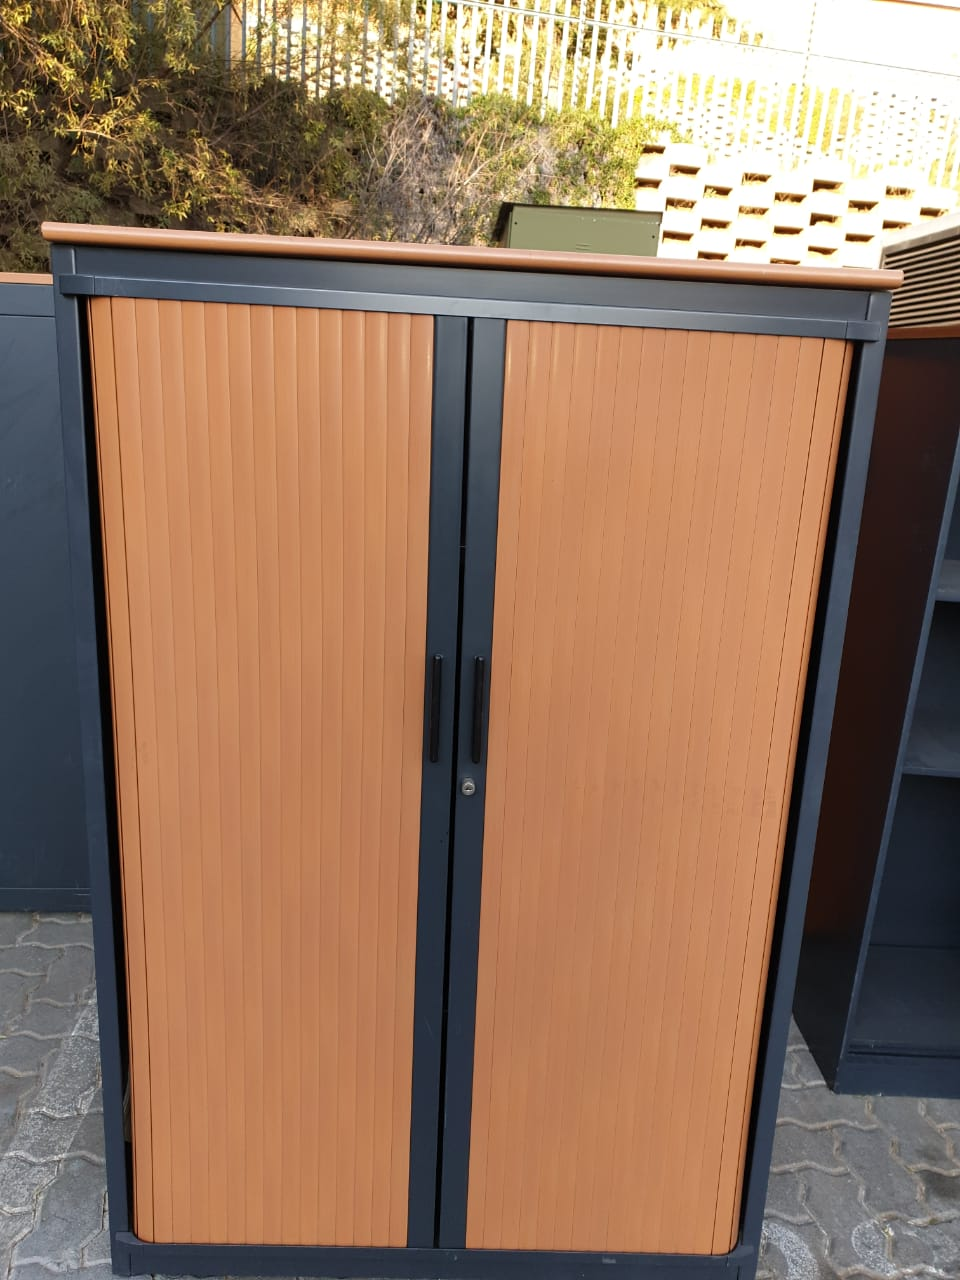 ROLLER DOOR CREDENZAS - cherry doors